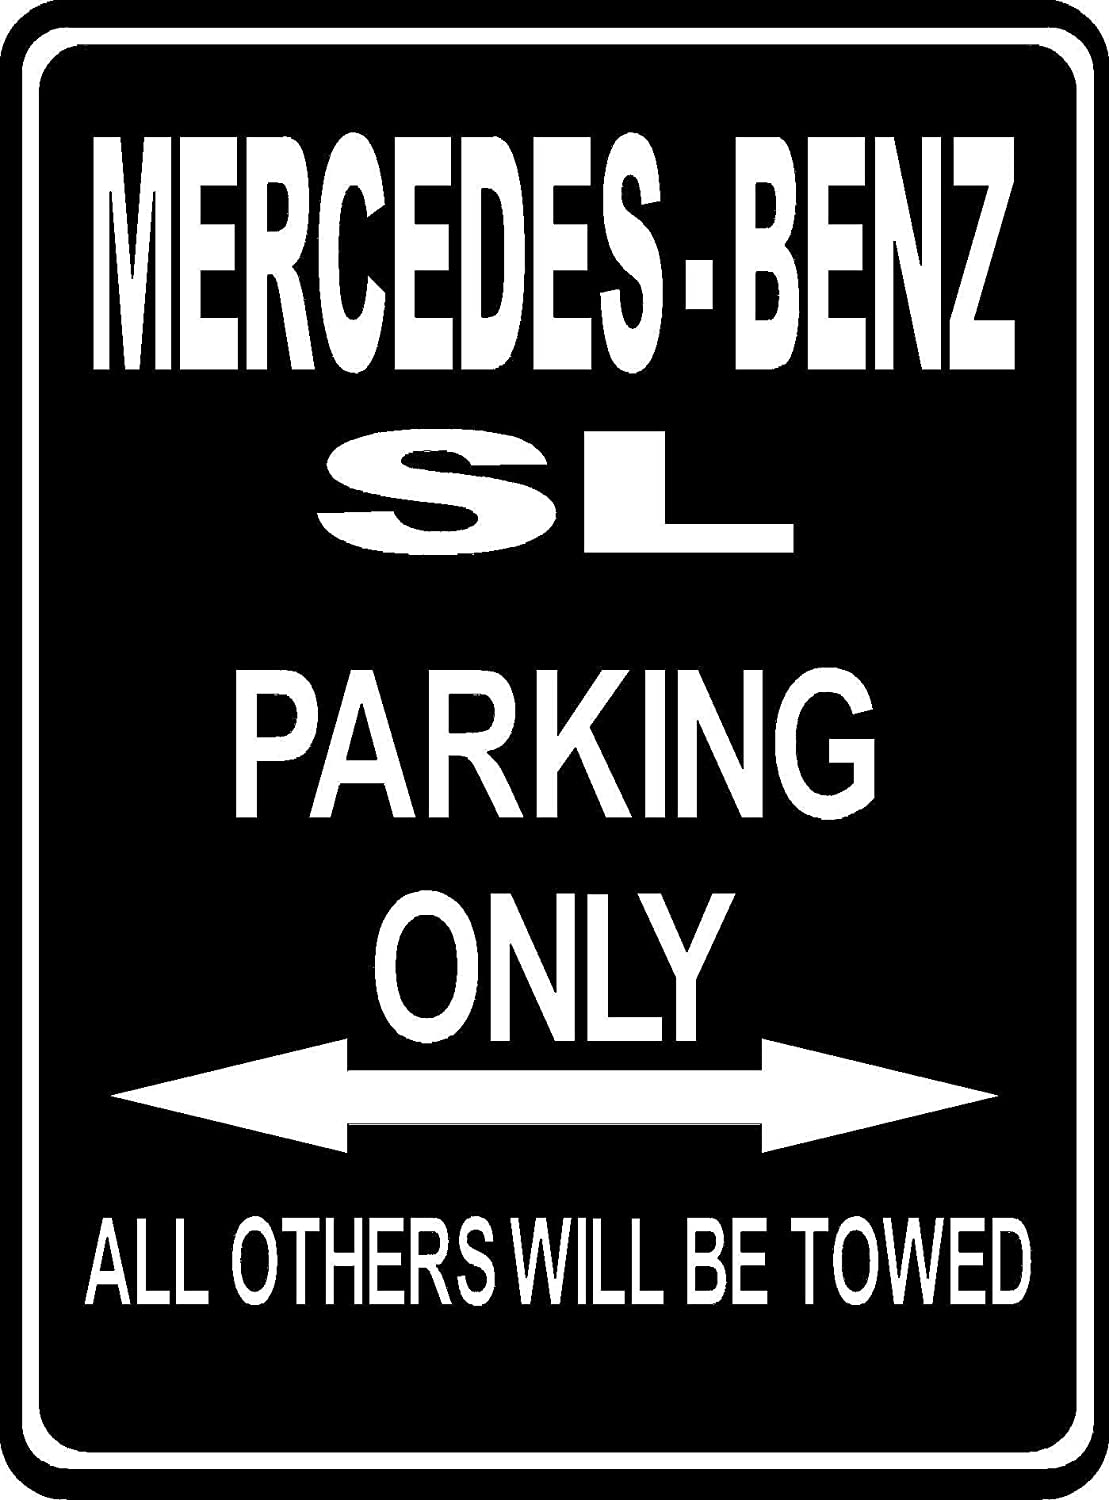 Custom parksign - Parking Only MERCEDES-BENZ SL - parking lot sign. (ALL FIXING INCLUDED)(Extra Large Size:32cm x 24cm)